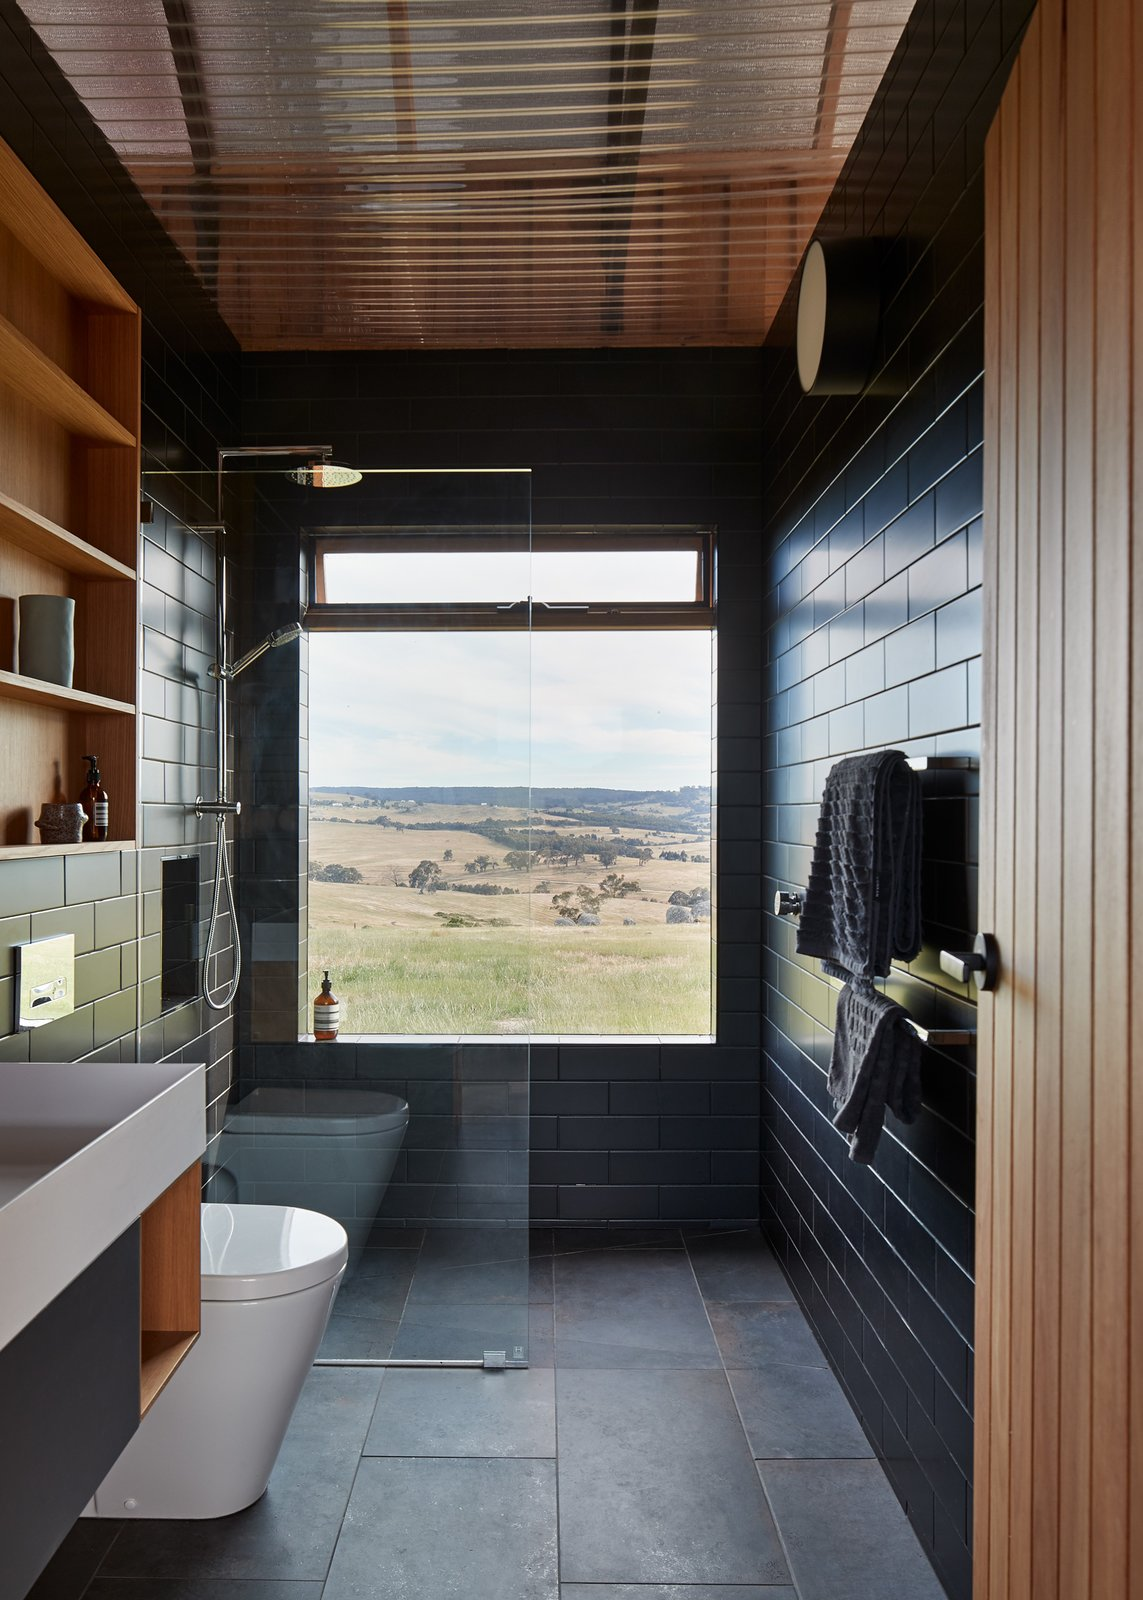 Bath Room, Ceramic Tile Wall, Vessel Sink, Full Shower, Wall Lighting, Ceramic Tile Floor, Corner Shower, and Open Shower The view is the focal point in a bathroom sheathed in charcoal tile and complemented by wood accents.    Photos from Simplicity Reigns at This Off-Grid Australian Retreat